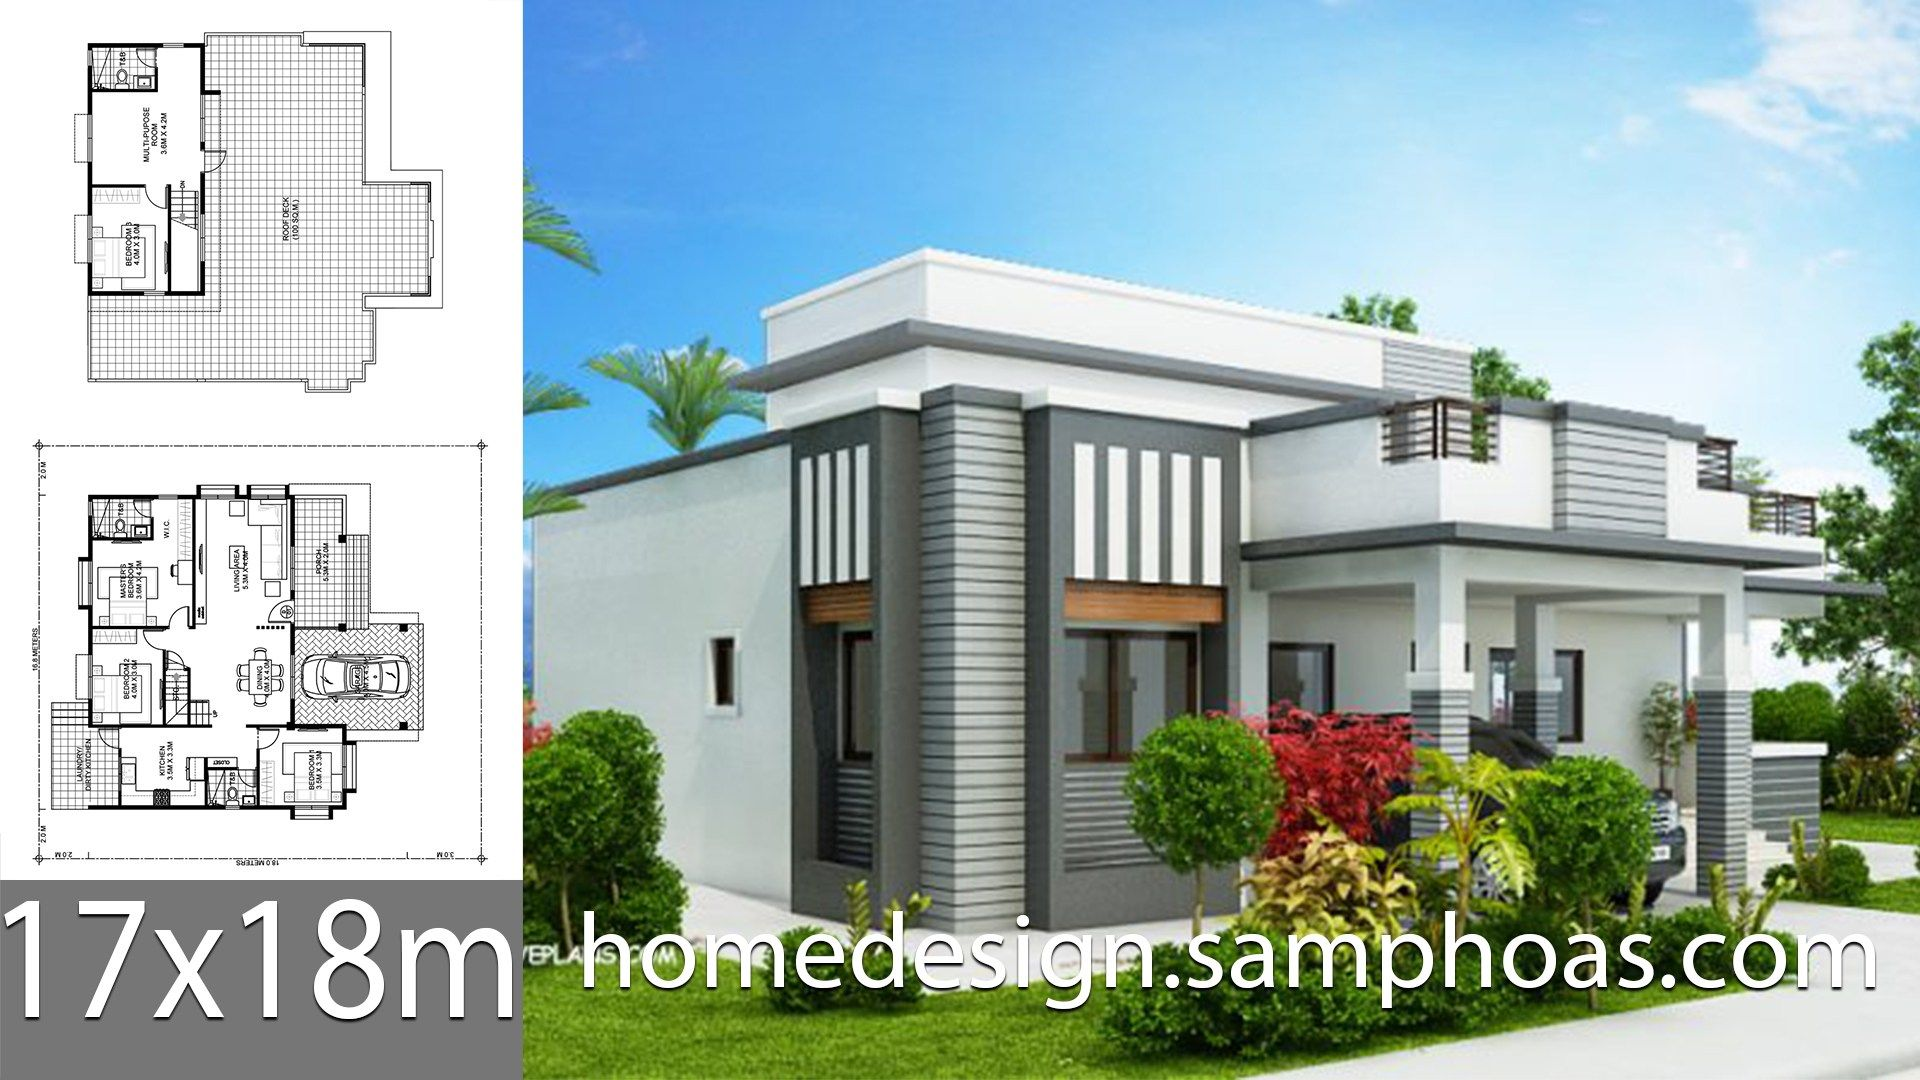 House Plans 17x18m With 4 Bedroom Style Modern Terrace Slaphouse Description Ground Level 3 Bedro Beautiful House Plans Architectural House Plans House Plans